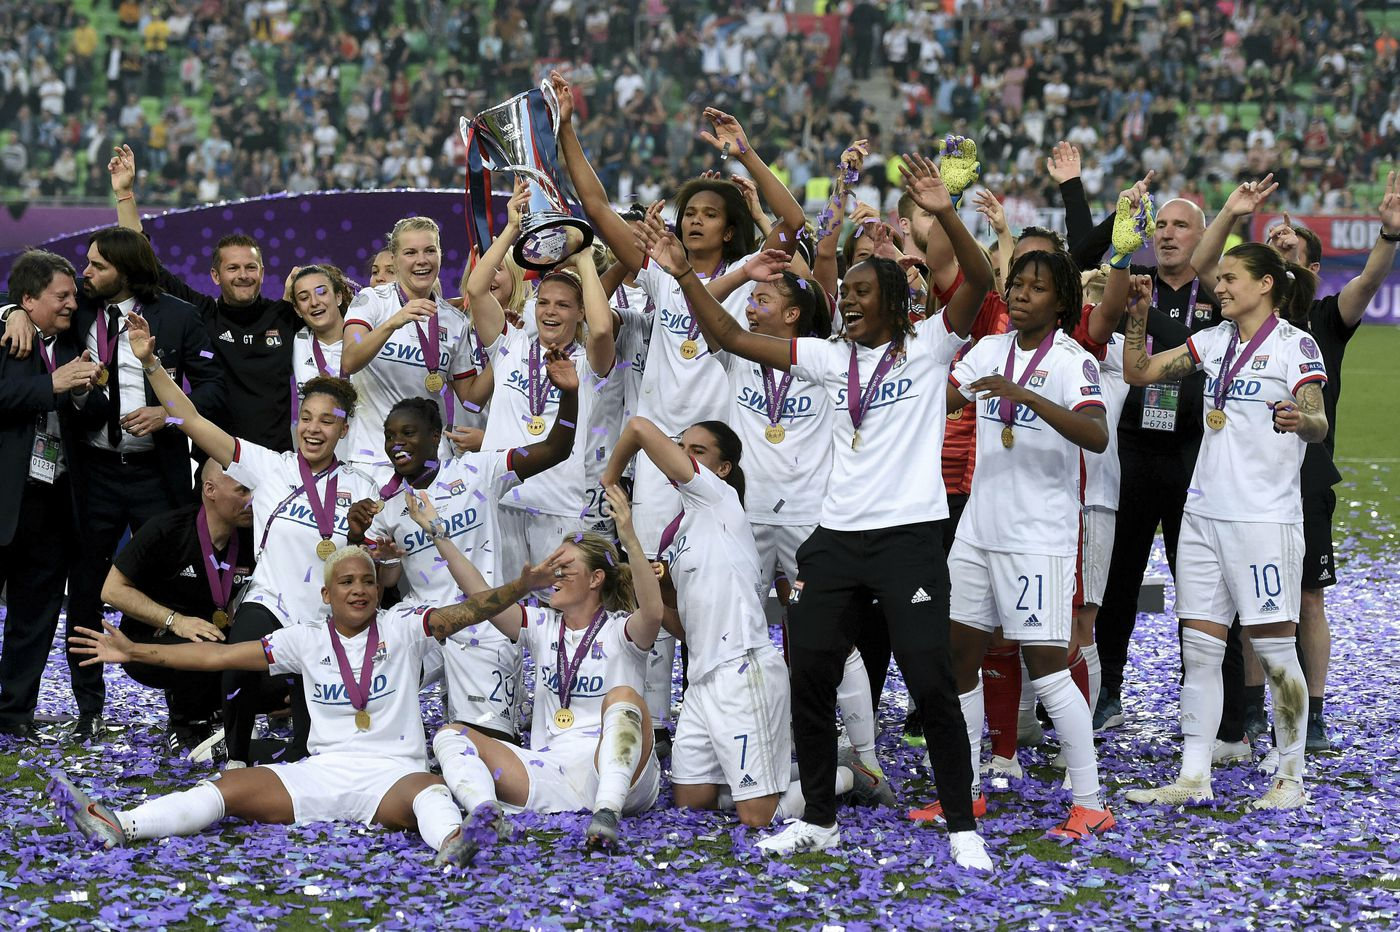 CBS All Access to broadcast UEFA Women's Champions League tournament